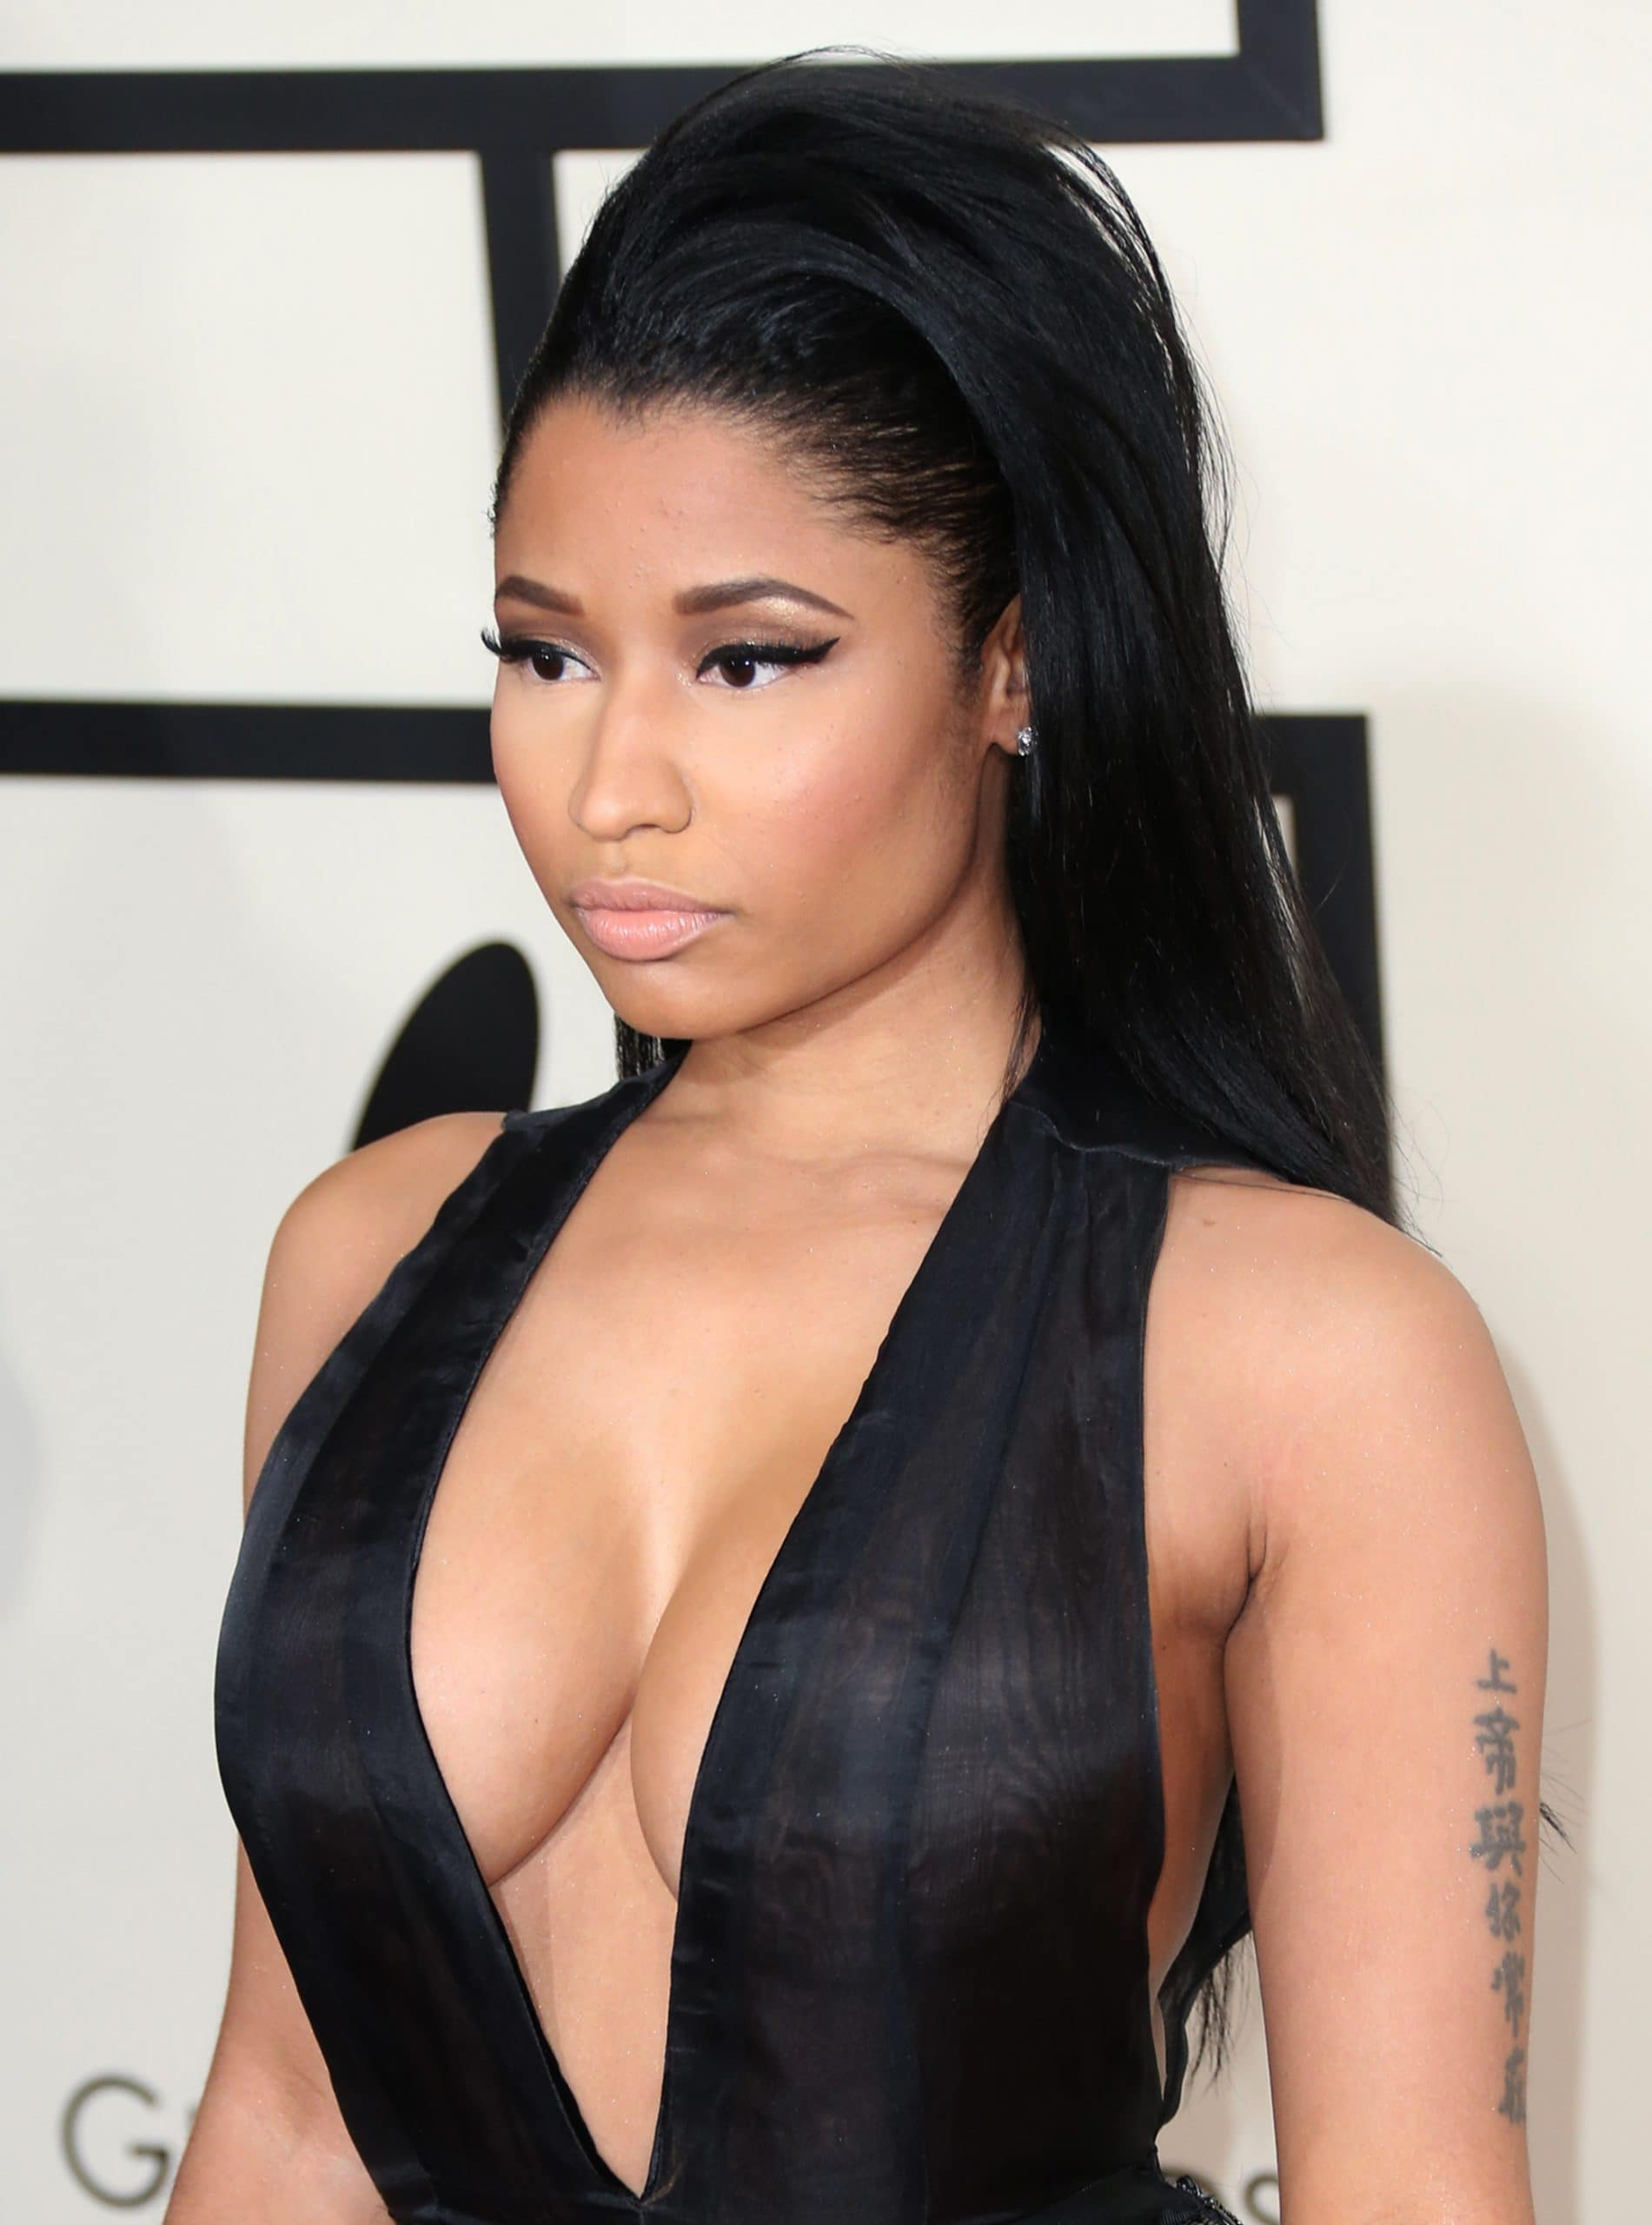 """Nicki Minaj was nominated at the 57th Grammy Awards for Best Rap Song for her single """"Anaconda"""" and Best Pop Duo/Group Performance for her joint single """"Bang Bang"""", with Jessie J and Ariana Grande"""